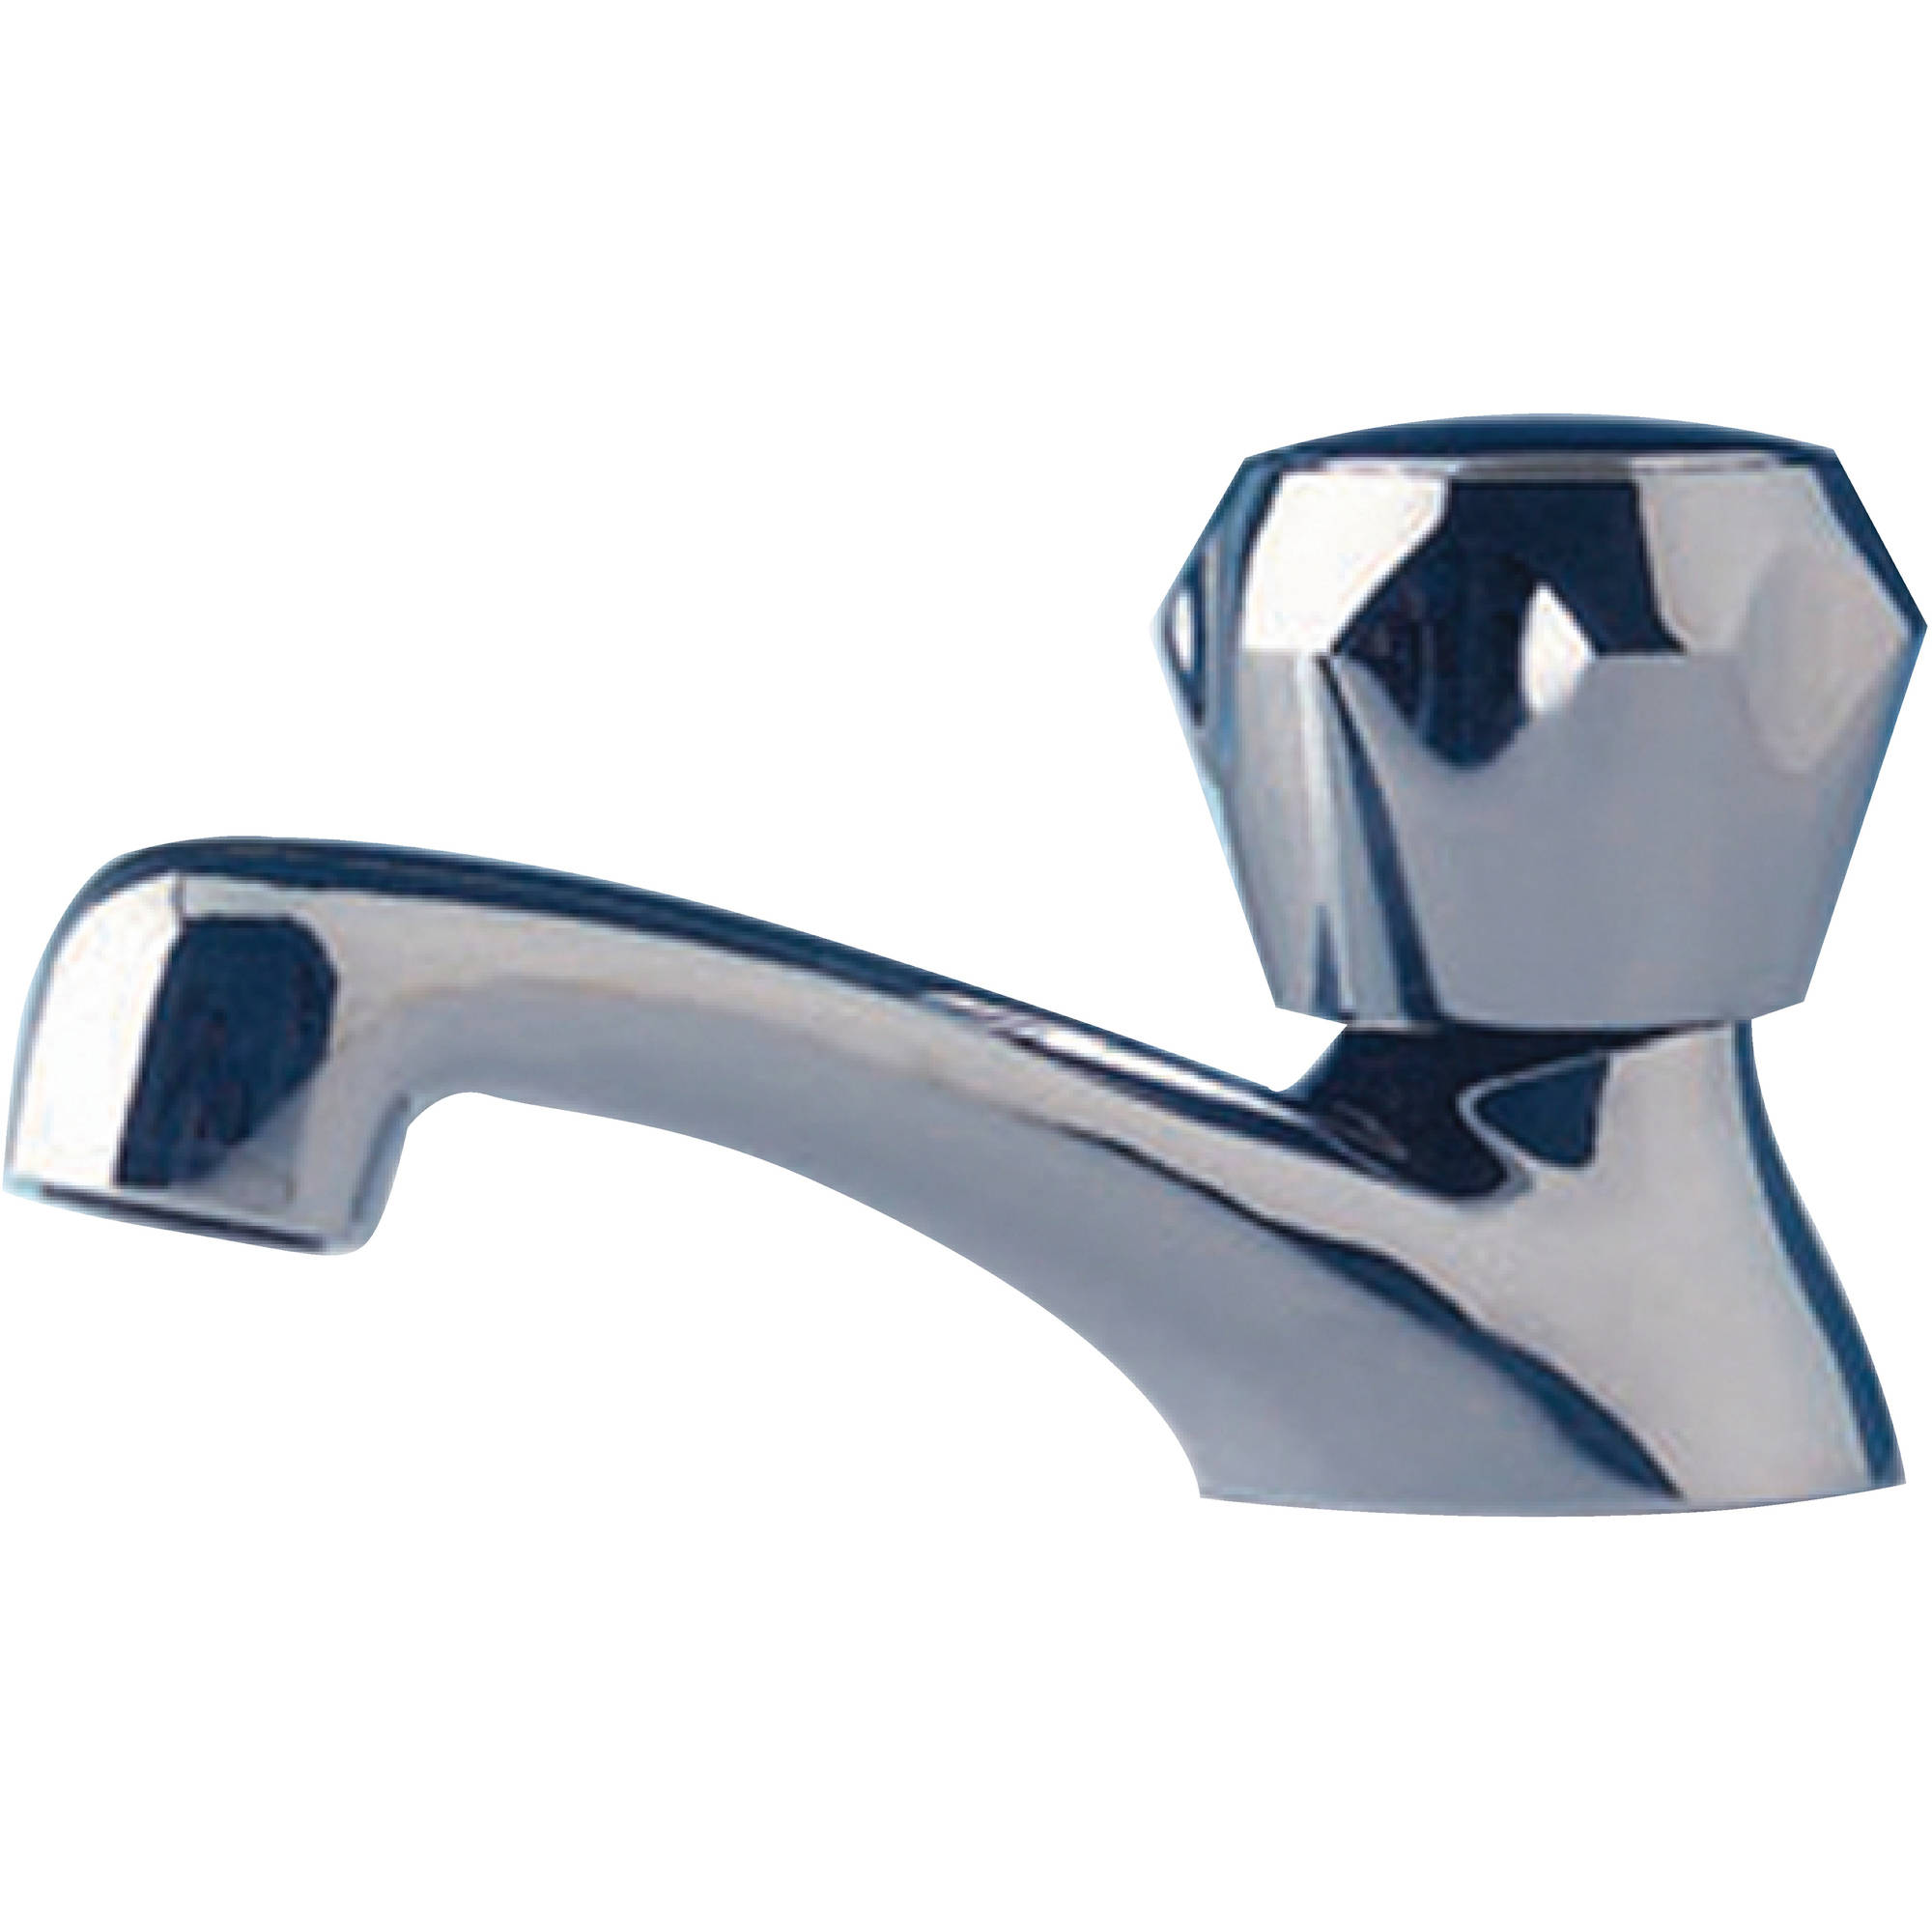 Scandvik 10050 Chrome Plated Brass Heavy-Duty Cold Water Basin Tap, Standard Knob